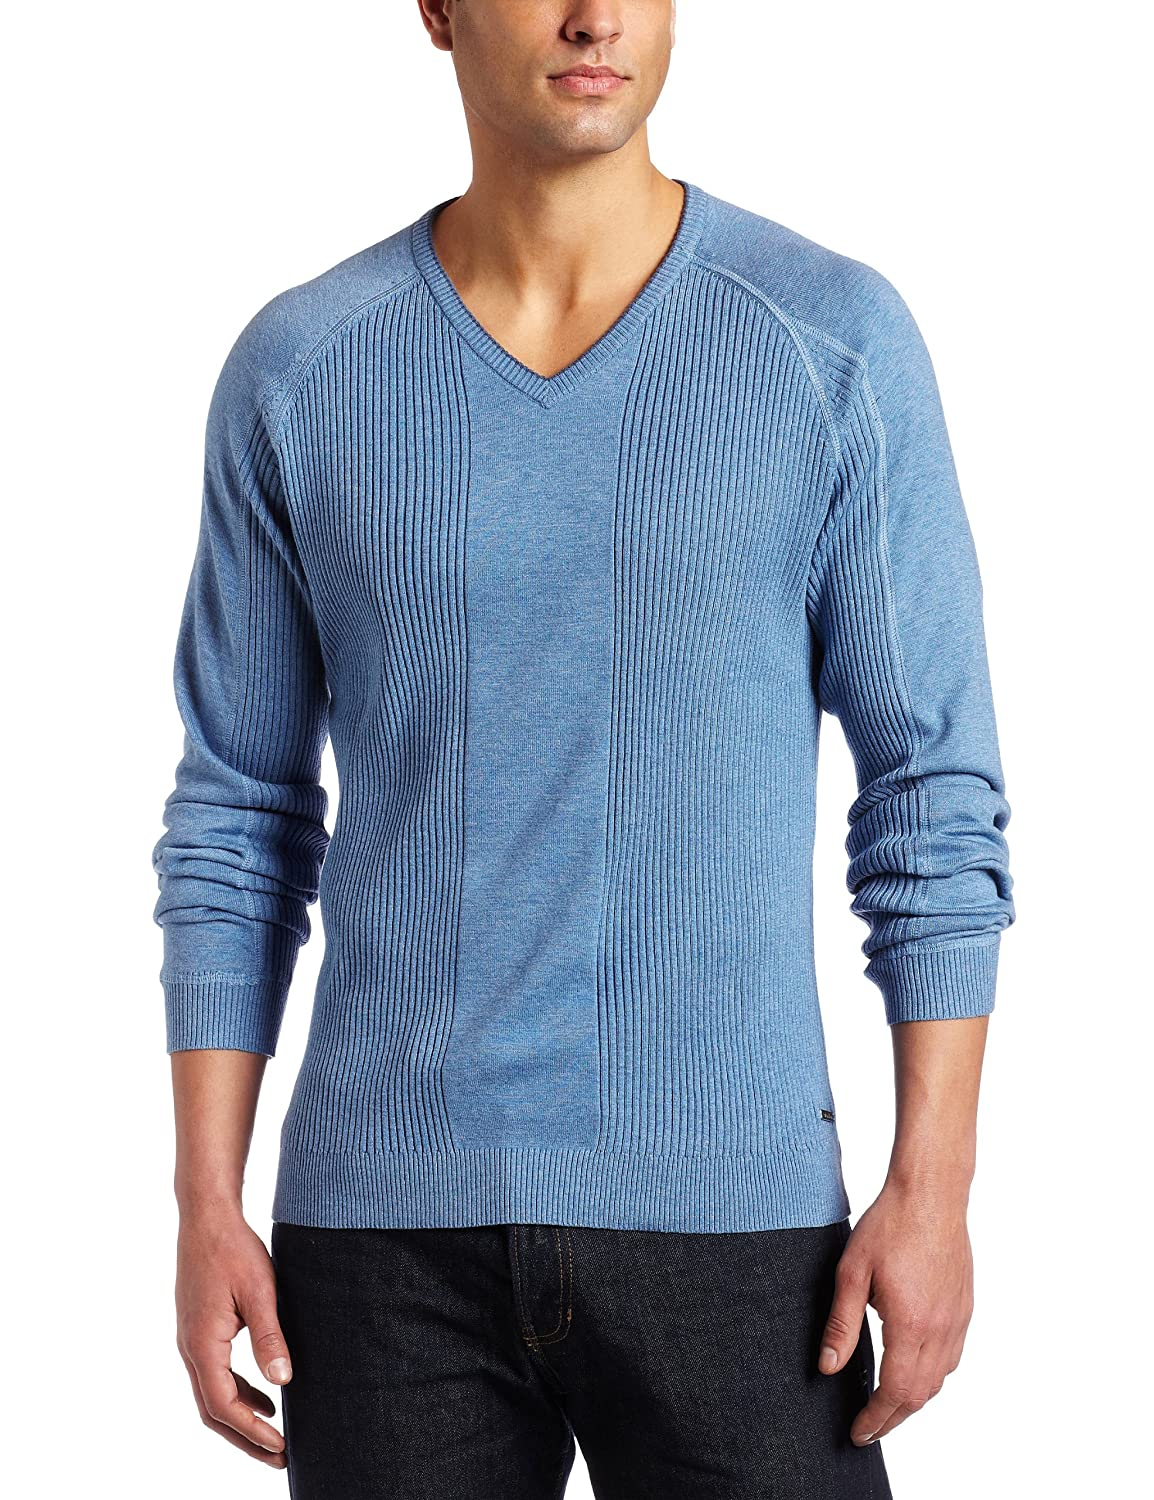 002913a2f47 Calvin Klein Men s Long Sleeve Ribbed V-Neck Sweater